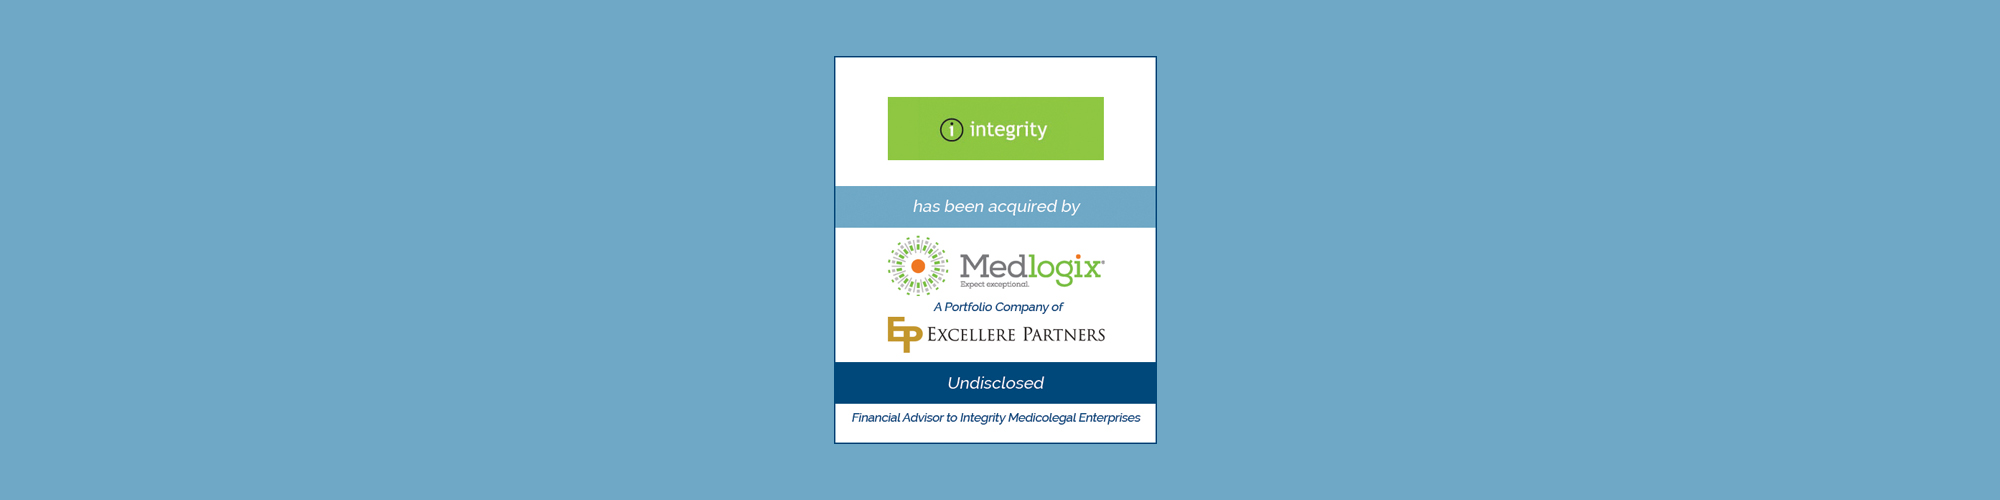 Bailey Southwell & Co. Advises Integrity Medicolegal Enterprises on Sale to Medlogix